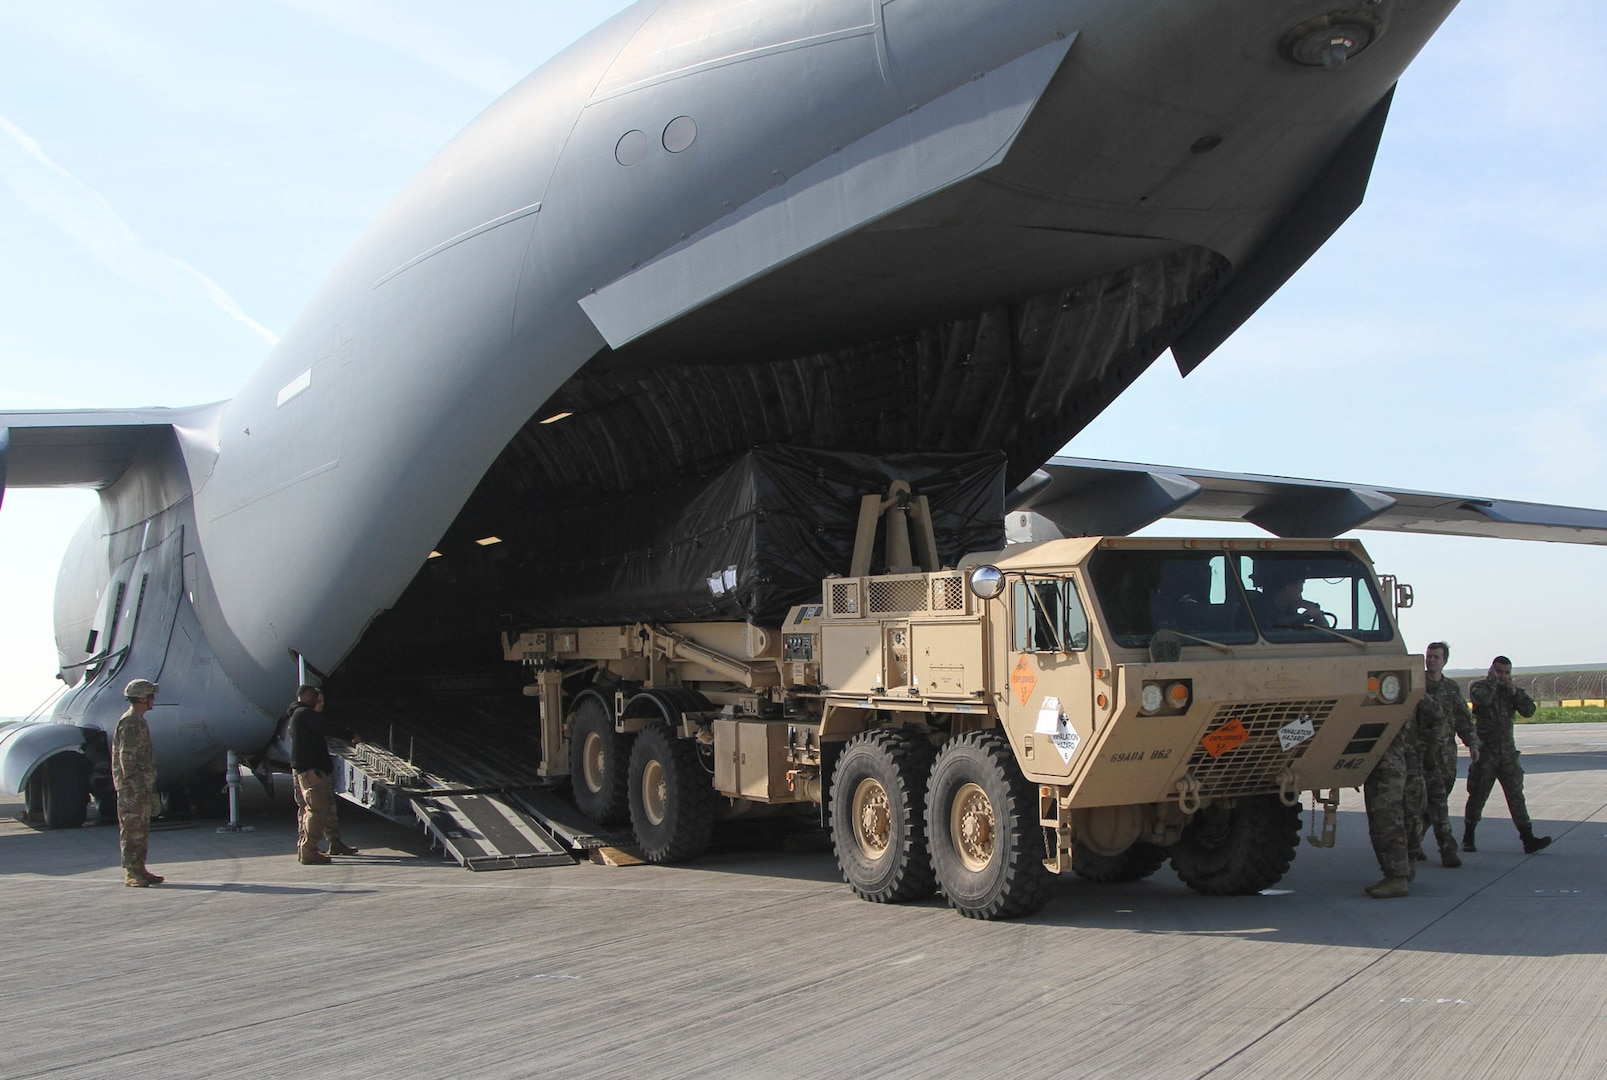 American troops offload a Terminal High Altitude Area Defense launcher from a C-17 Globemaster III